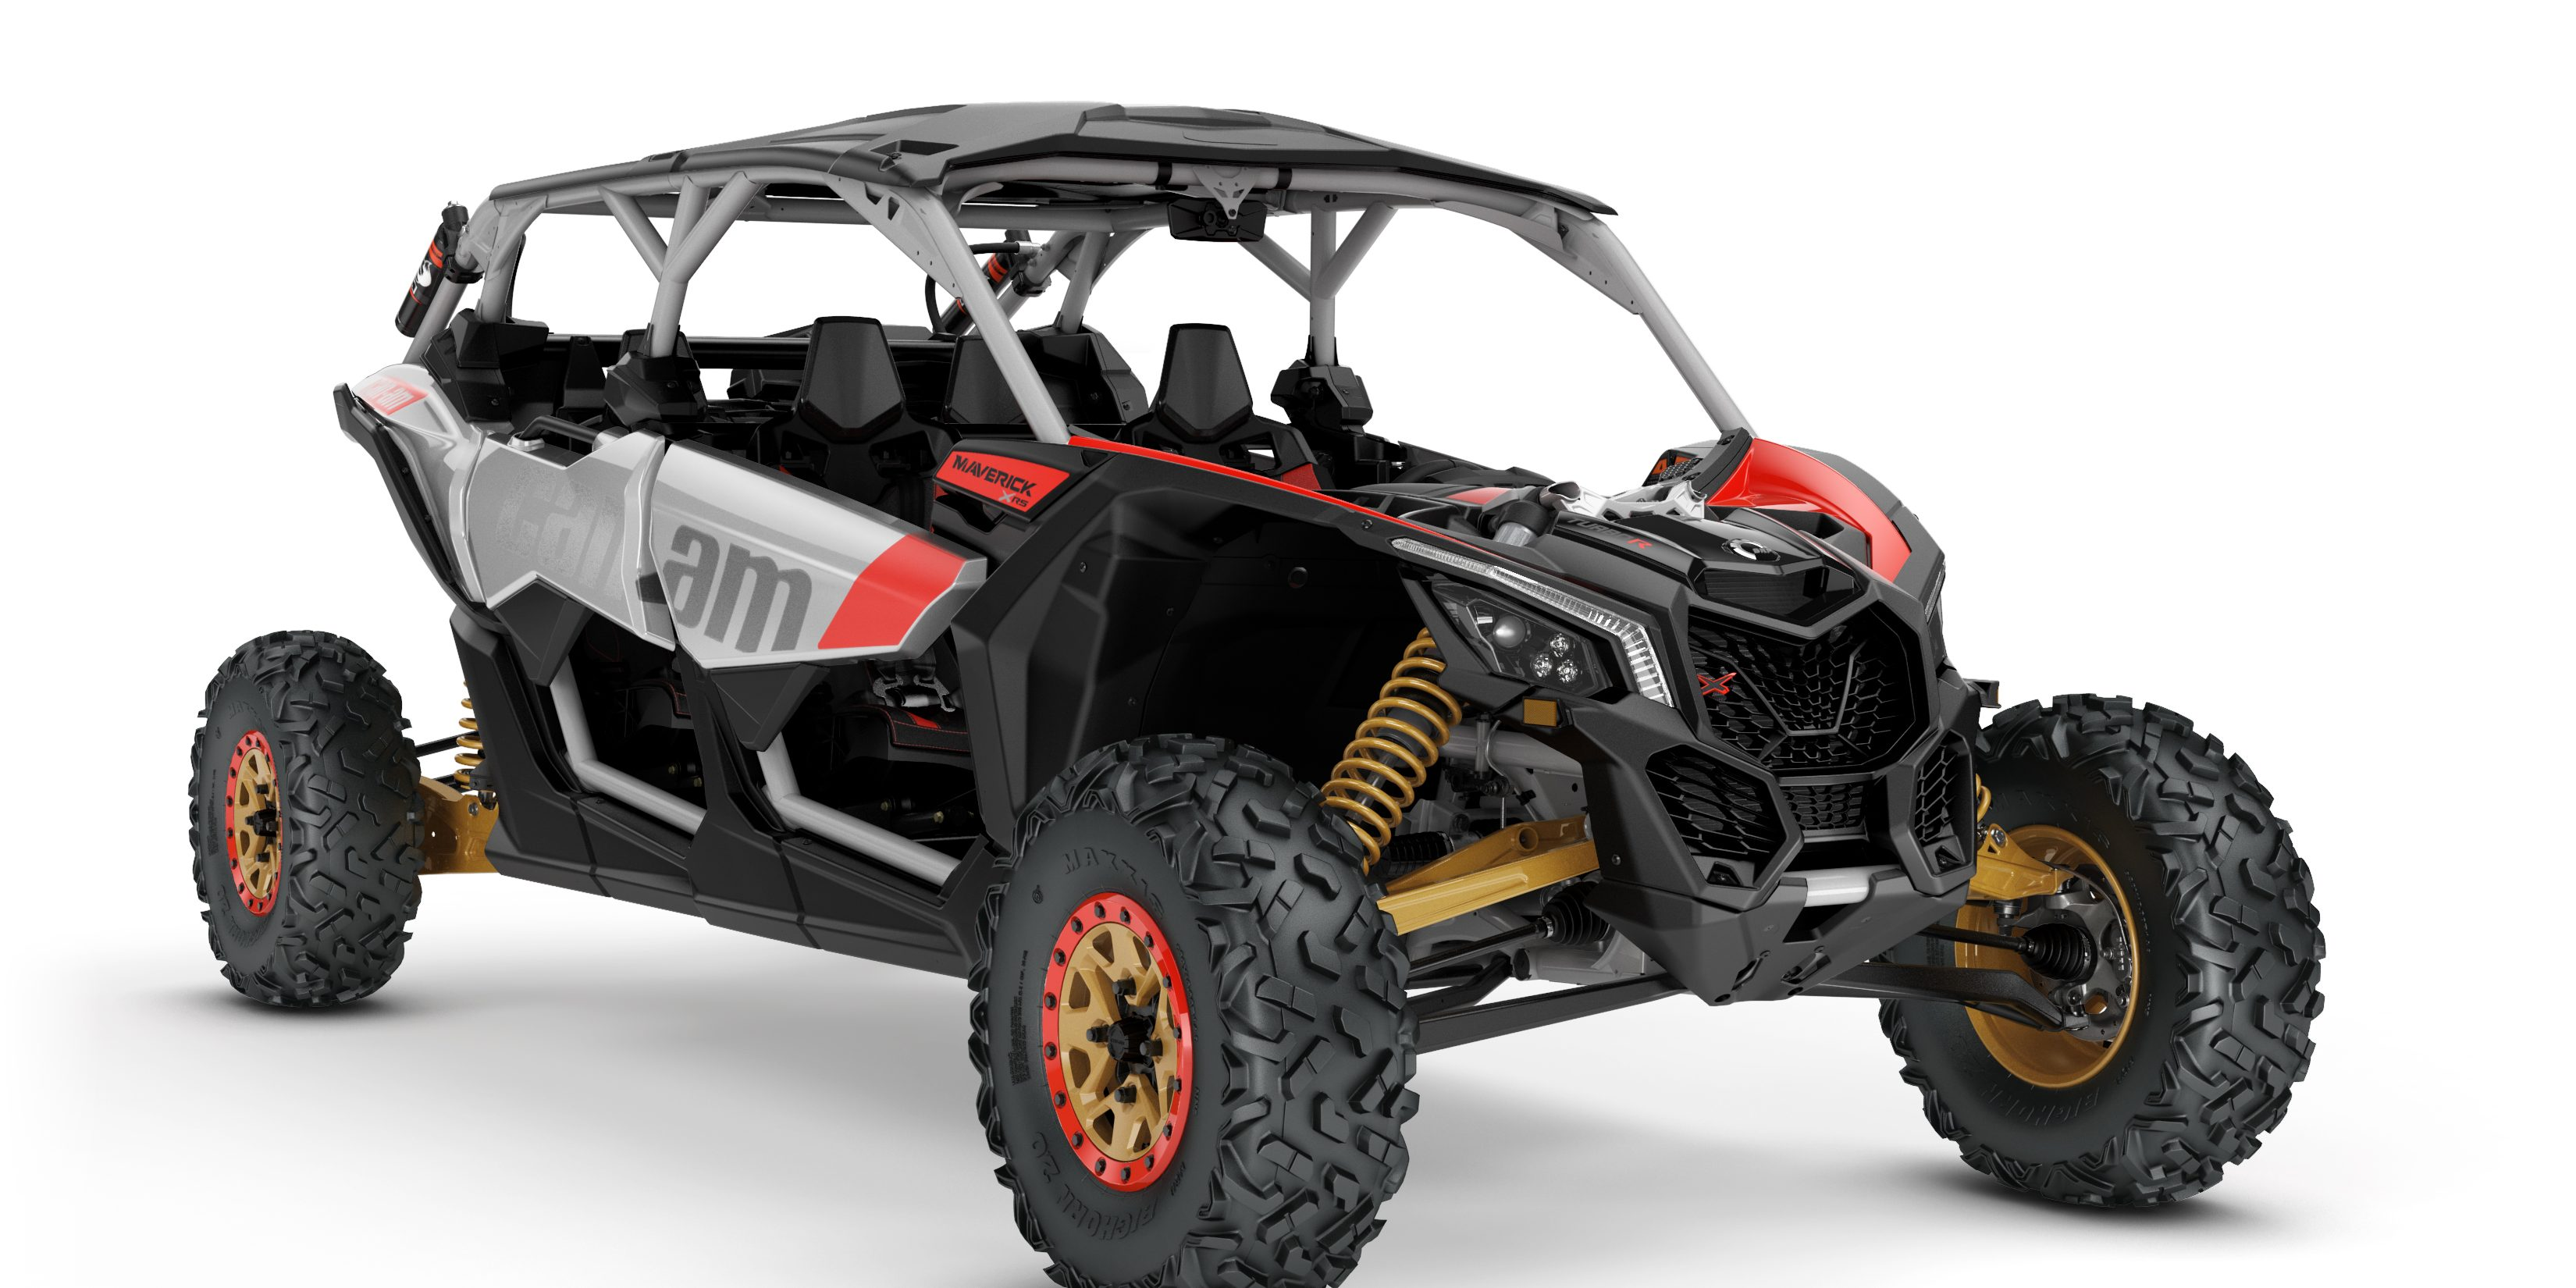 Best Side By Side Utv 2019 BRP Unveils New 2019 Can Am SXS Vehicles! – UTV Sports Magazine